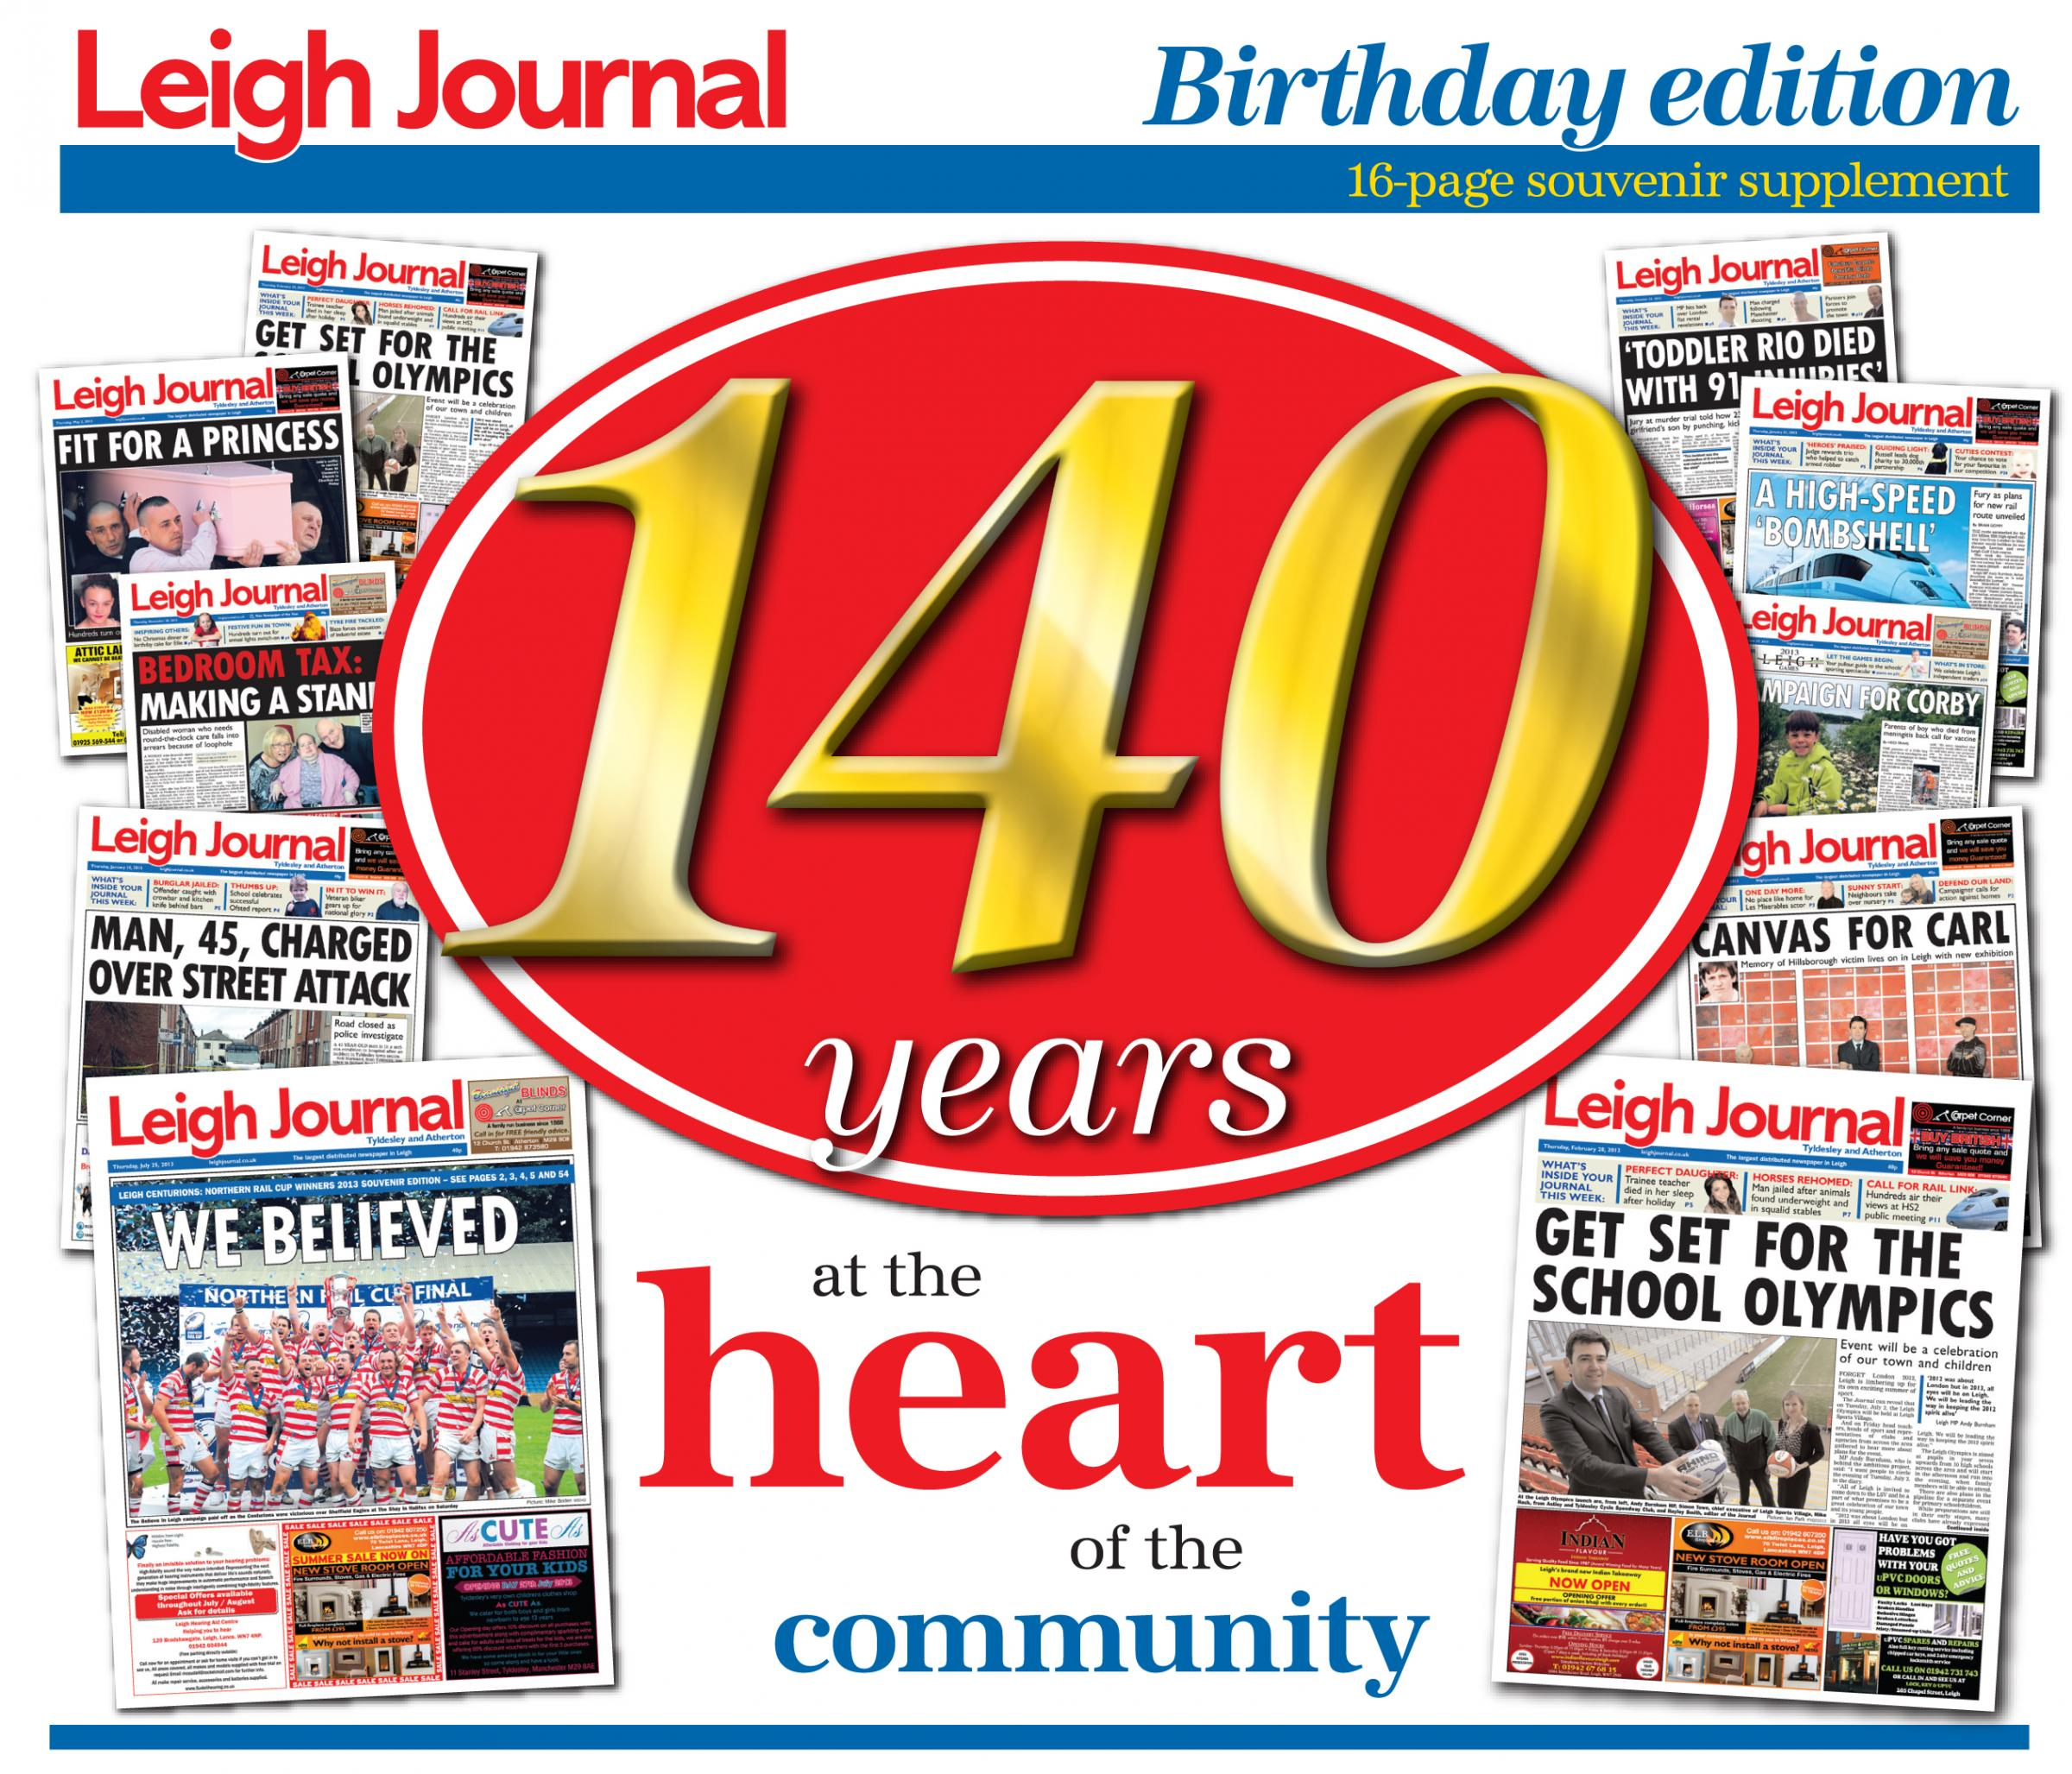 Leigh Journal celebrates 140th birthday